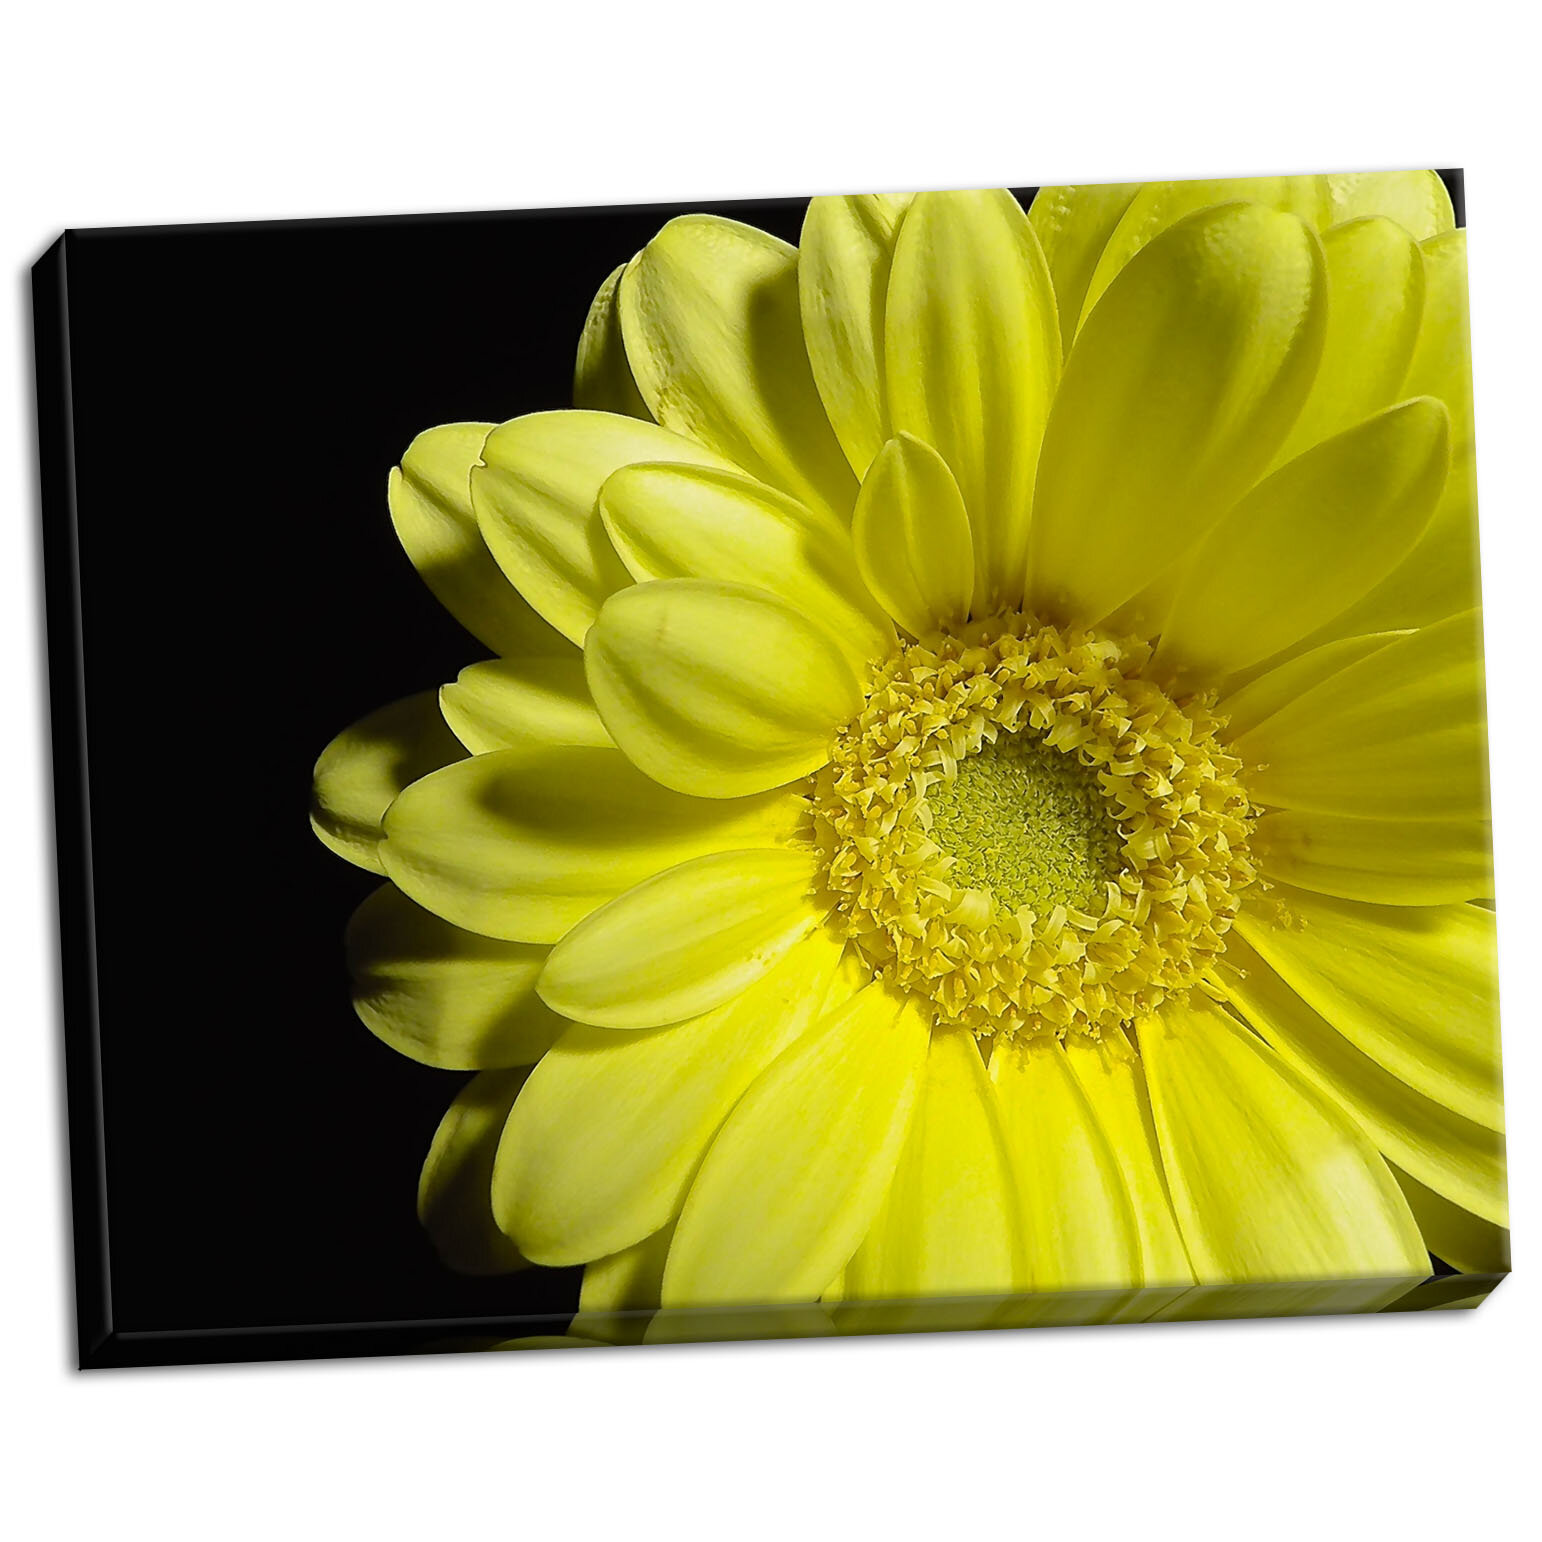 Ebern Designs \'Yellow Daisy\' Photographic Print on Wrapped Canvas ...